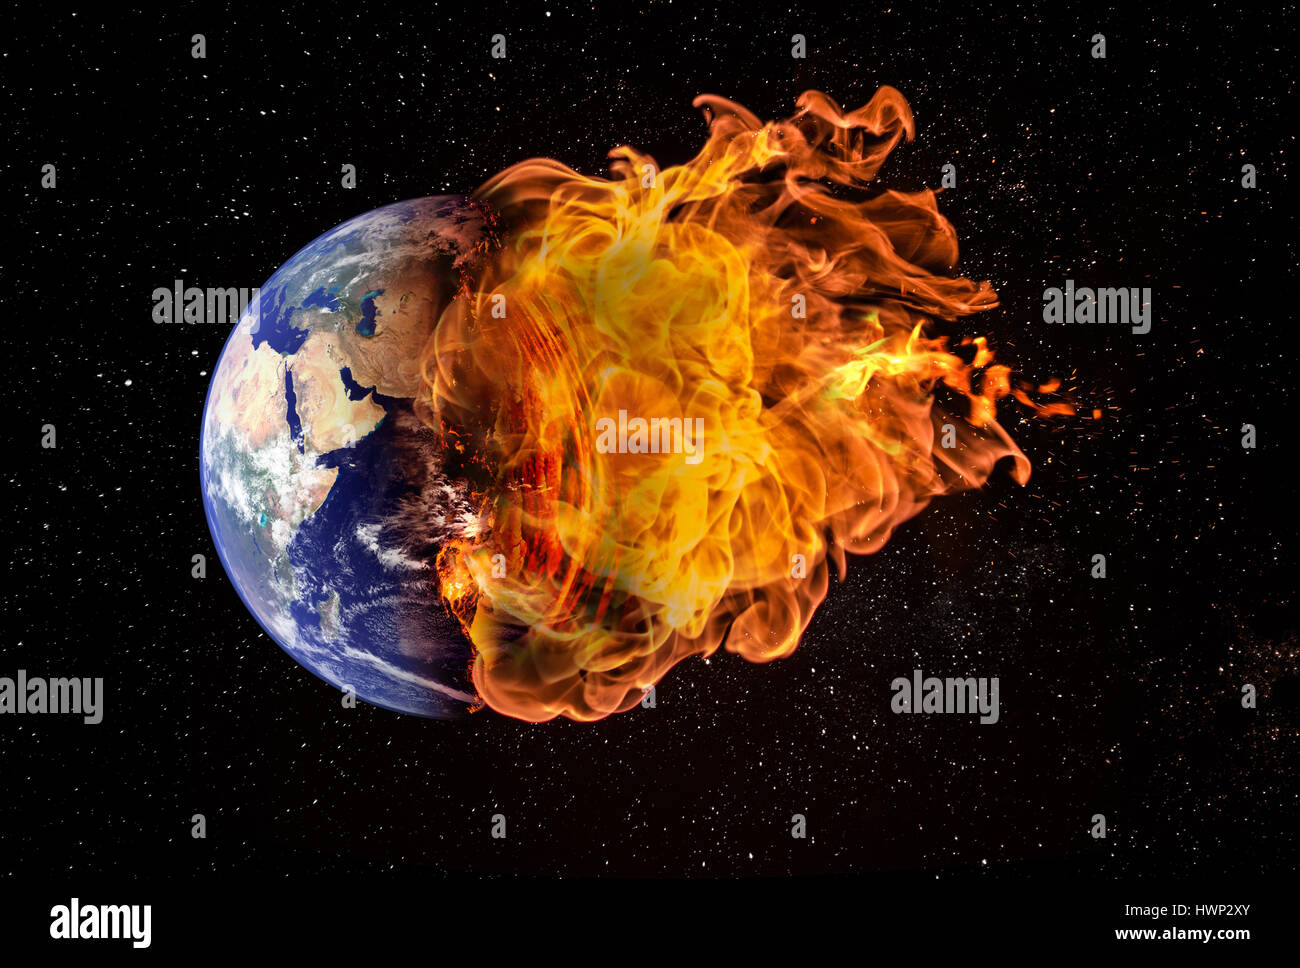 Planet earth in outer space engulfed in flames. Concept of natural disasters, global warming, apocalypse, war, judgment - Stock Image